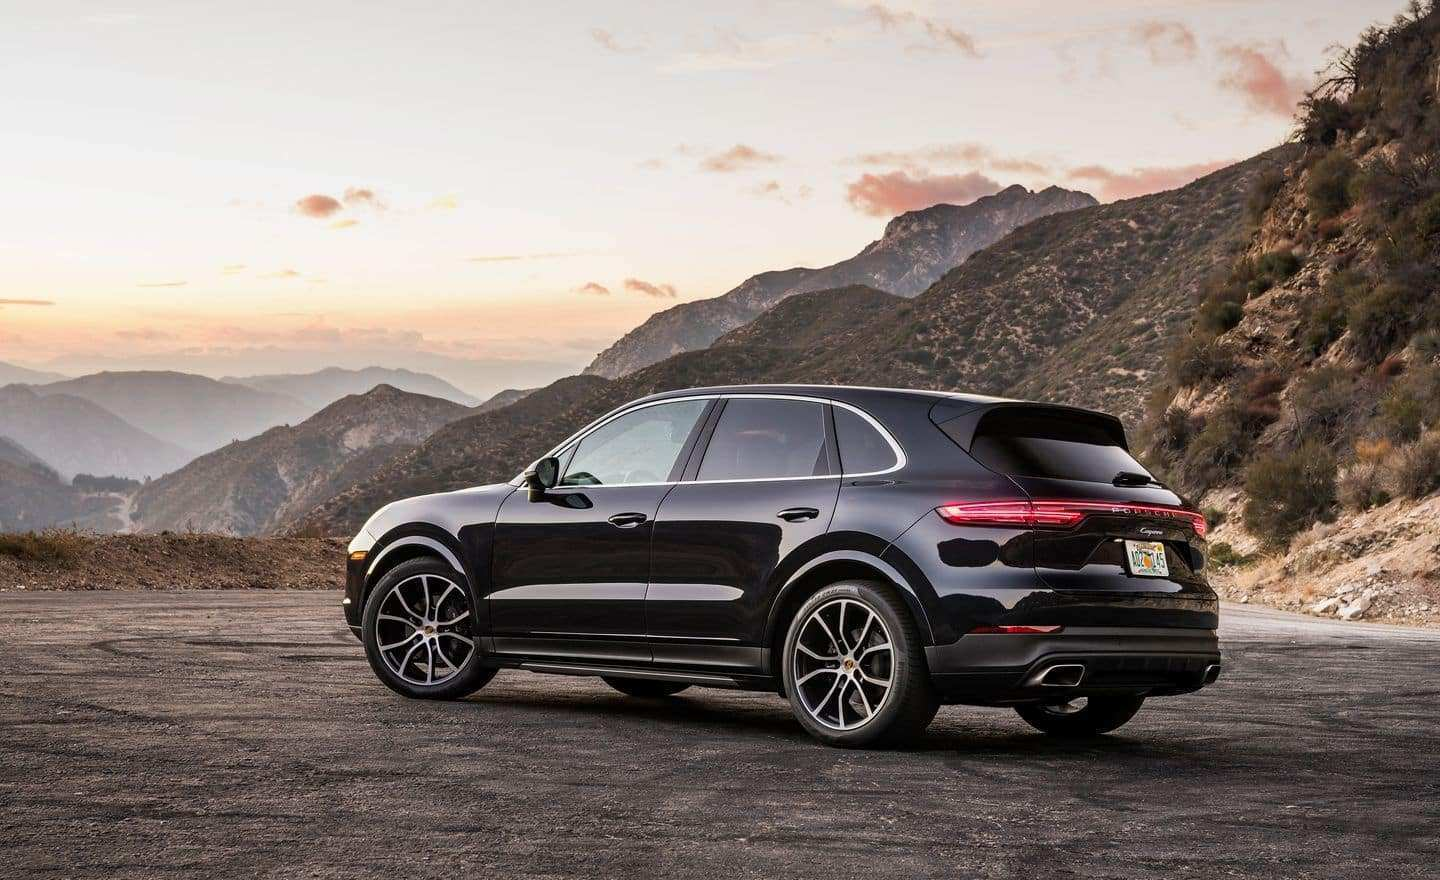 64 A 2019 Porsche Cayenne Price Design And Review